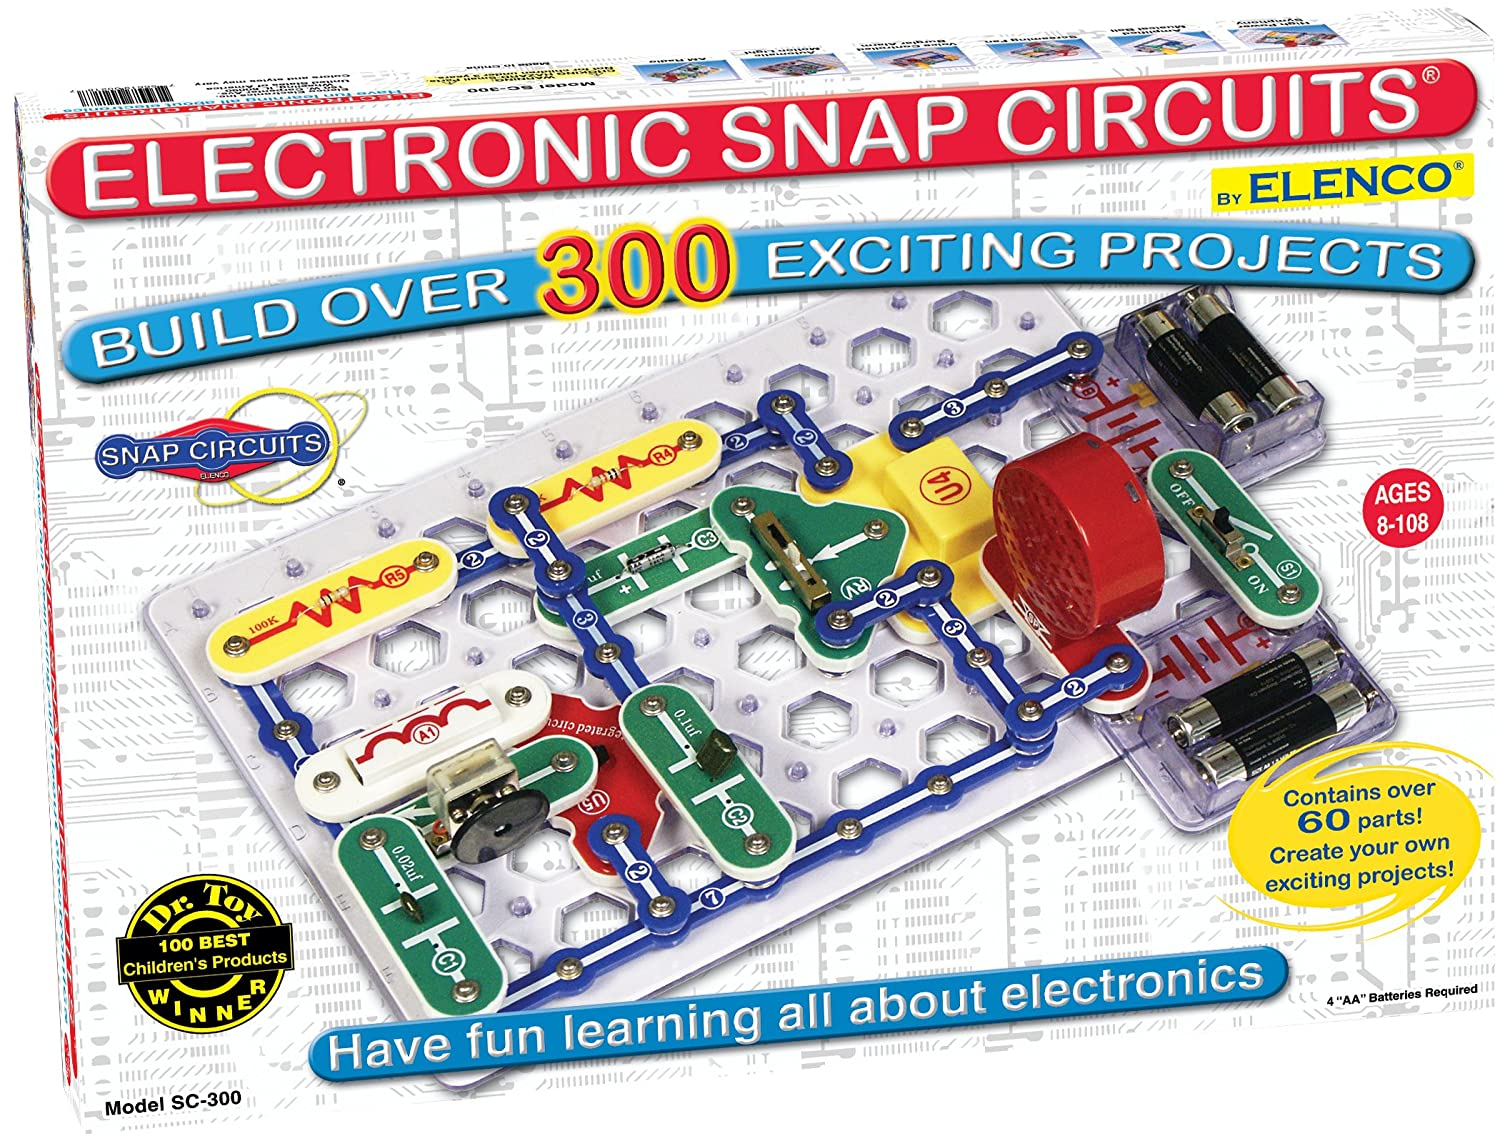 amazoncom snap circuits classic sc 300 electronics exploration kit over 300 stem projects 4 color project manual 60 snap modules unlimited fun